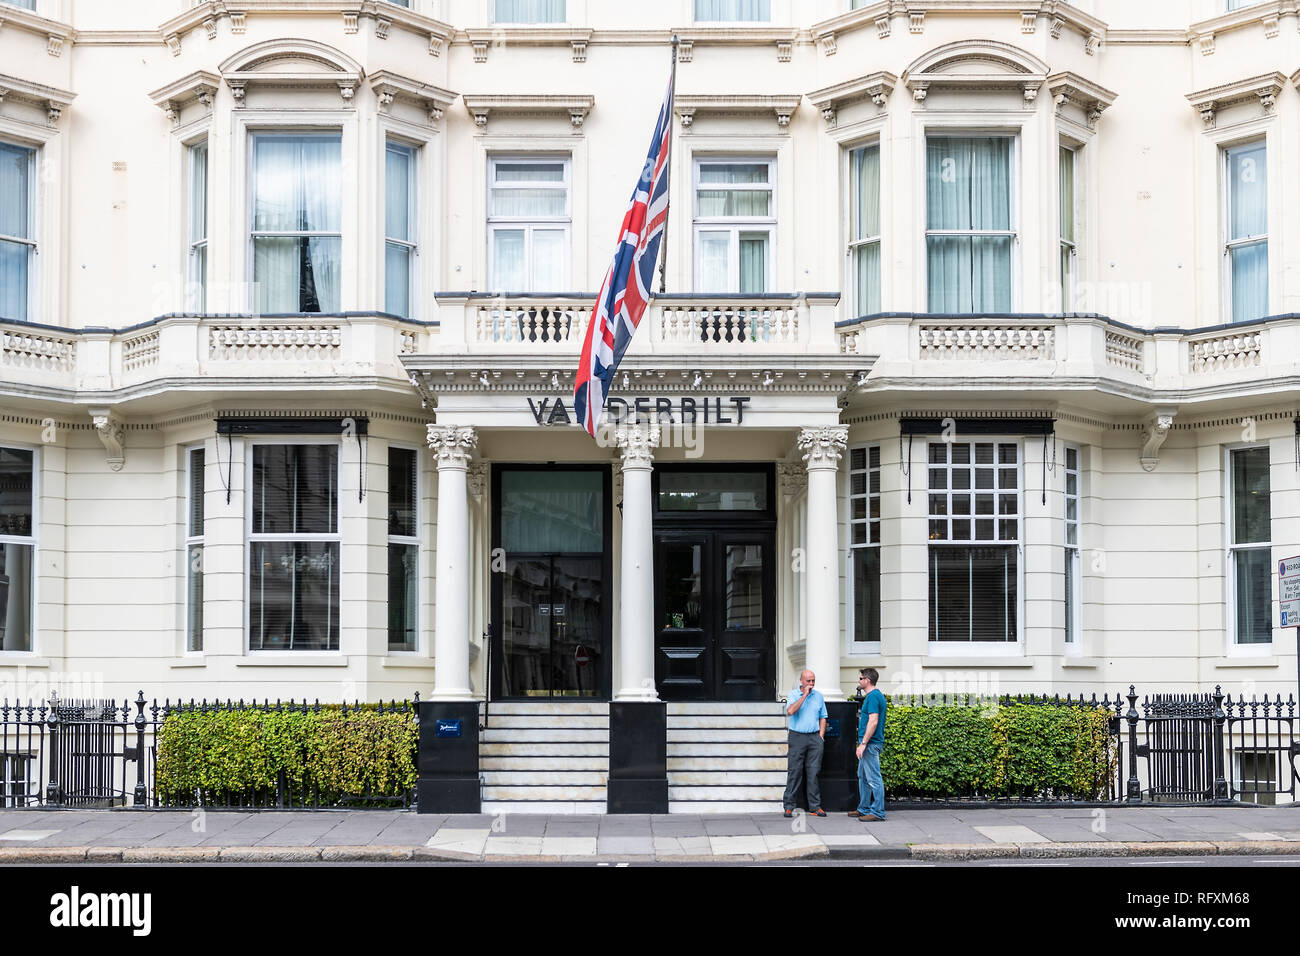 London, UK - September 16, 2018: Sign for Vanderbilt Radisson Blu Edwardian hotel on Cromwell road street in Kensington white architecture entrance an - Stock Image